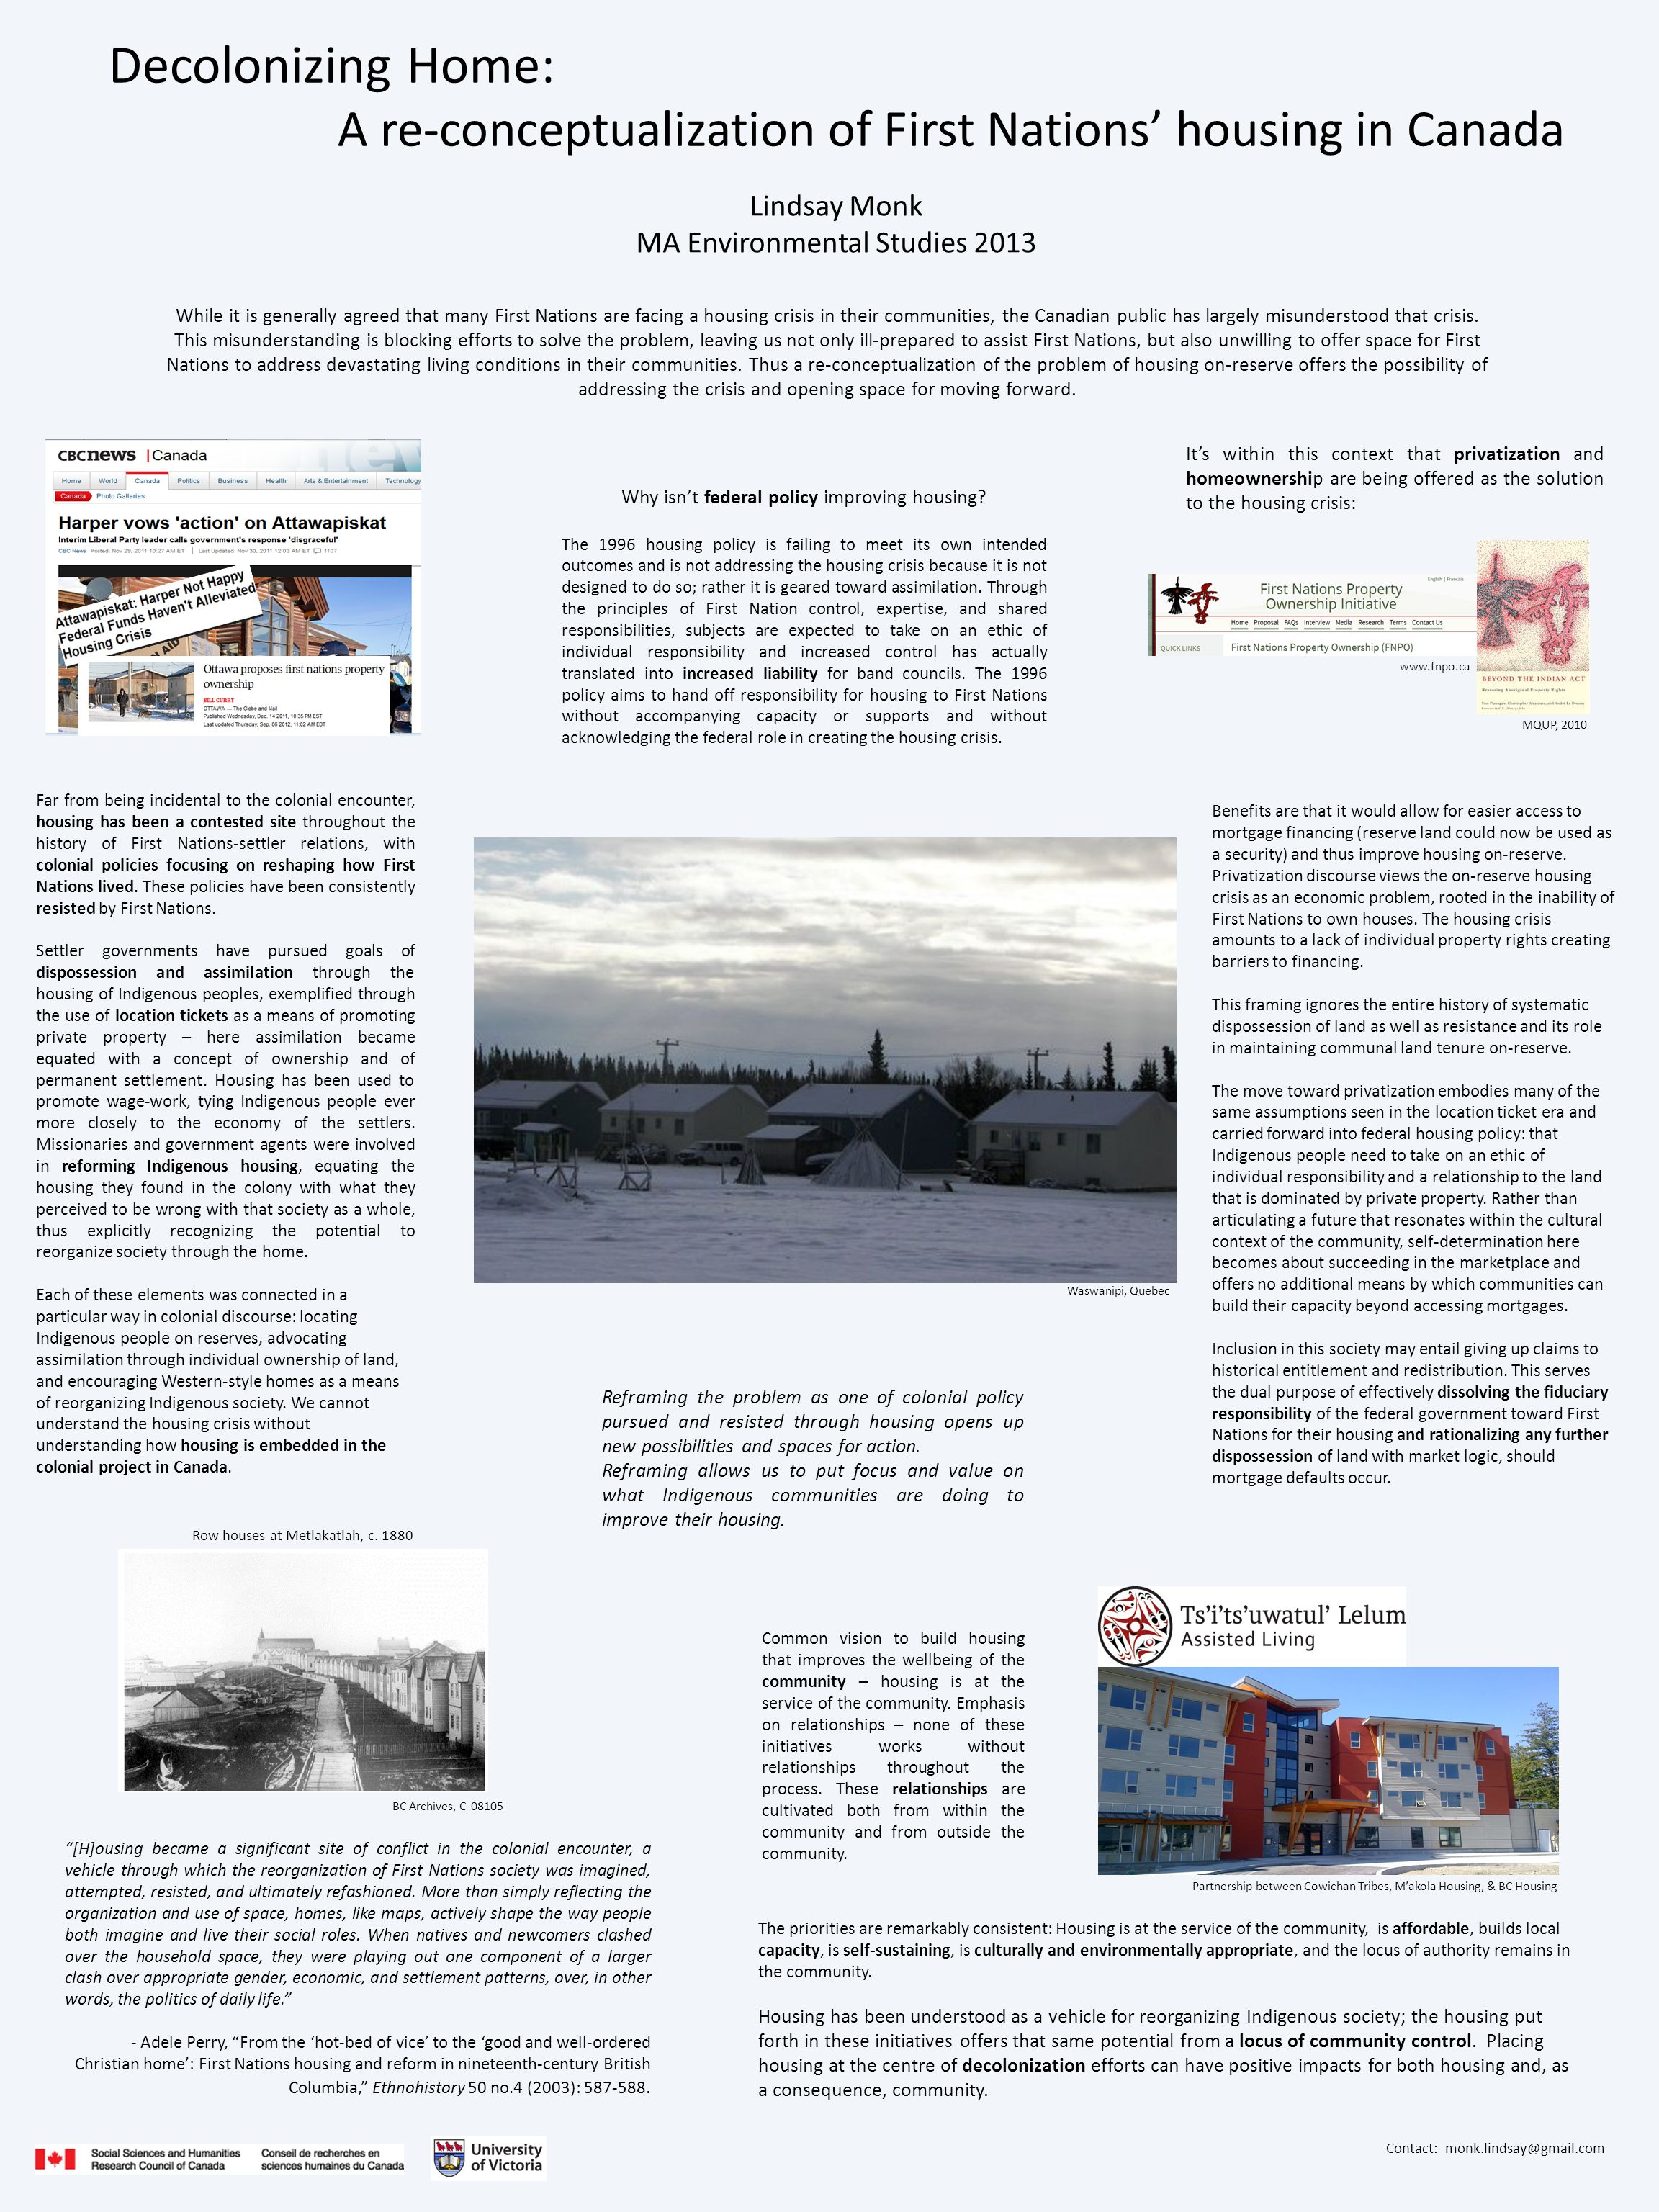 Decolonizing Home: A re-conceptualization of First Nations' housing in Canada Row houses at Metlakatlah, c.